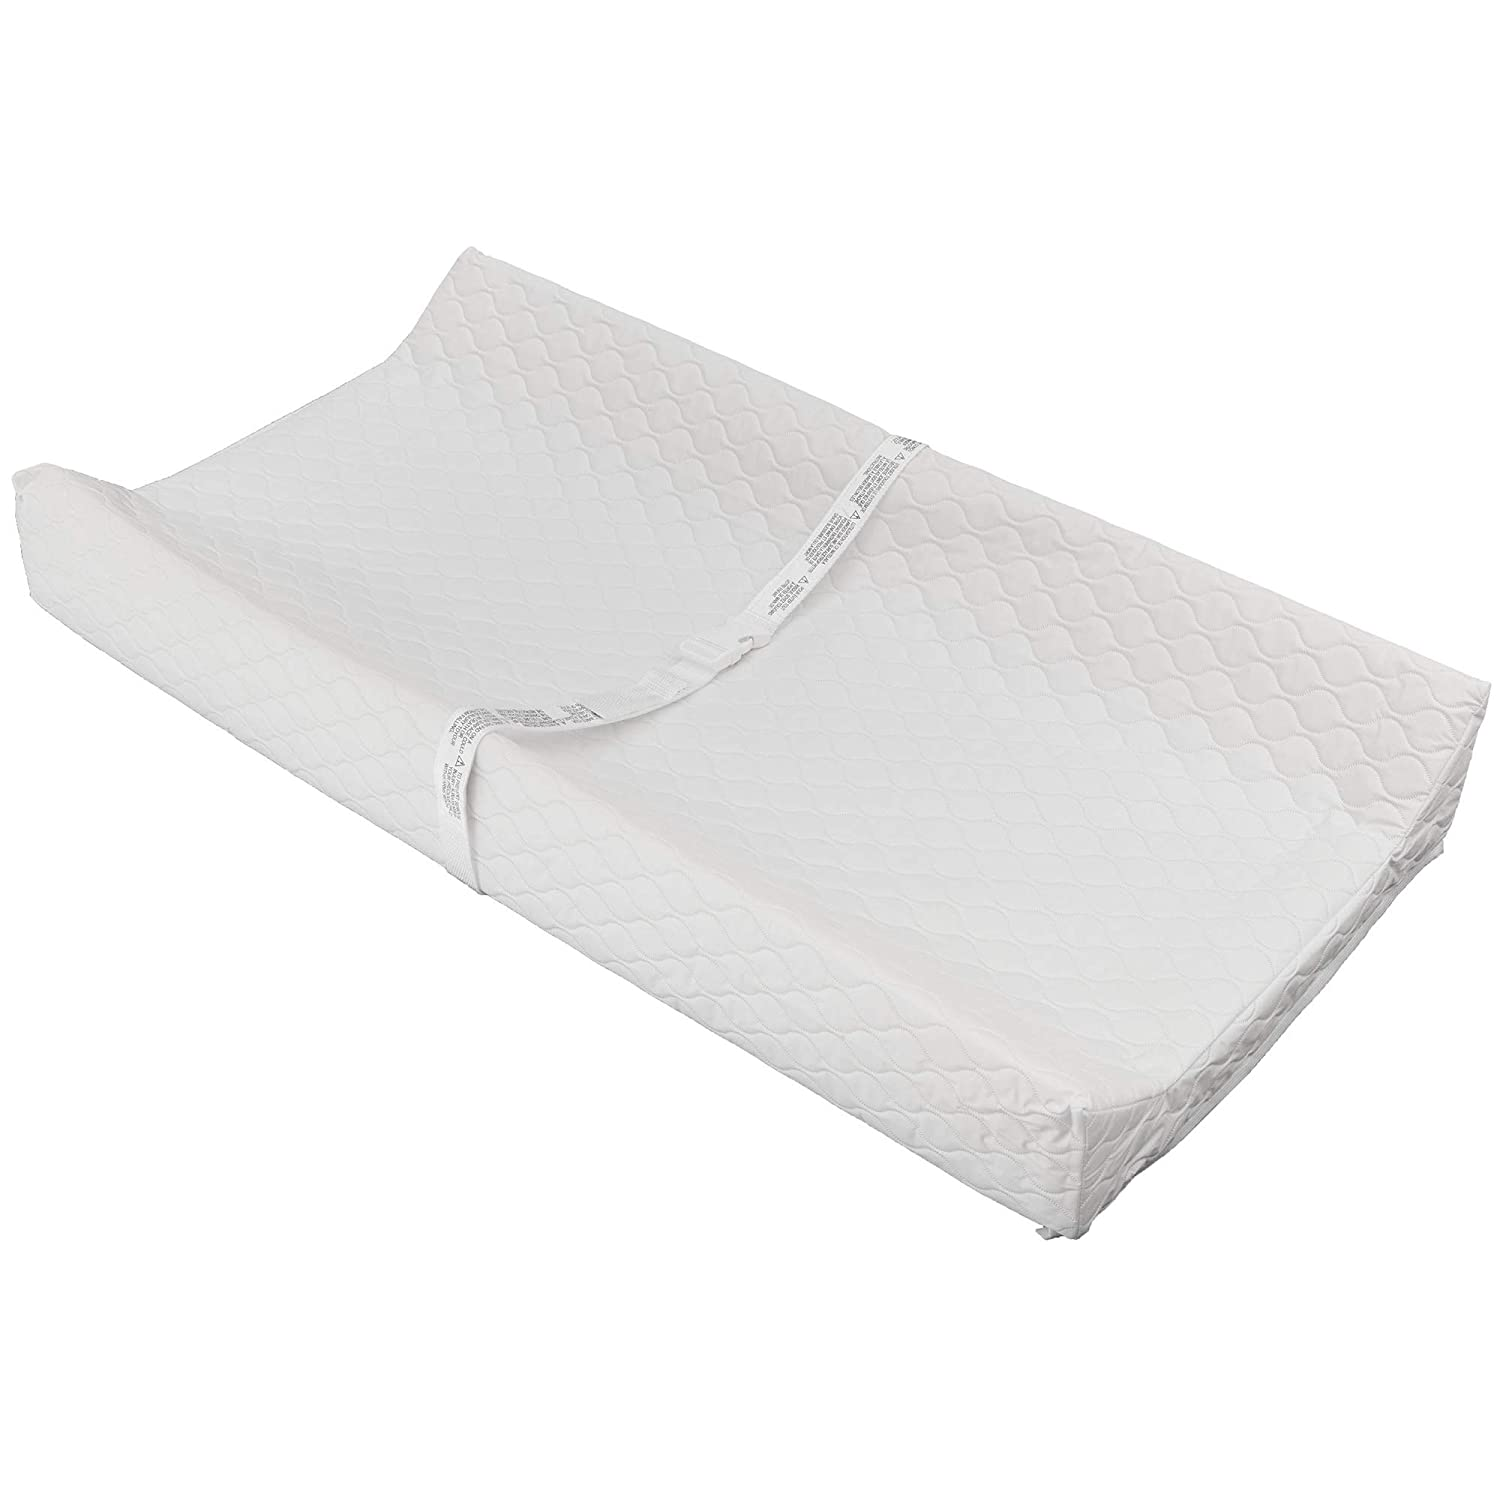 Waterproof Baby and Infant DiaperChangingPad, ComforPedic from Beautyrest, White